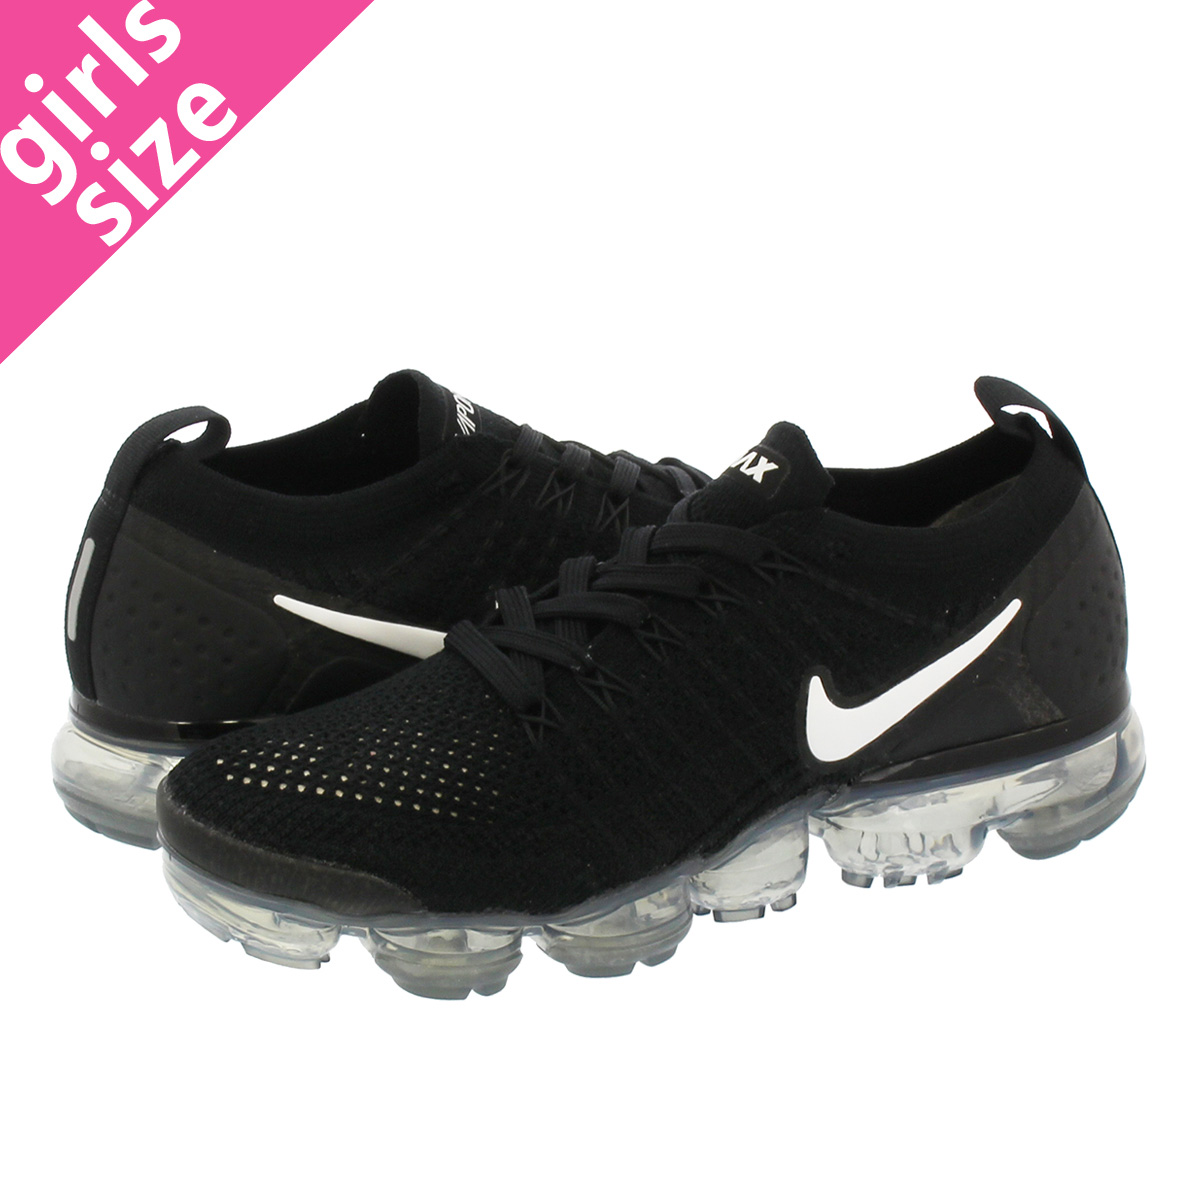 sale retailer 426b6 24e28 NIKE WMNS AIR VAPORMAX FLYKNIT 2 Nike women vapor max fried food knit  BLACK/WHITE/DARK GREY/METALLIC SILVER 942,843-001